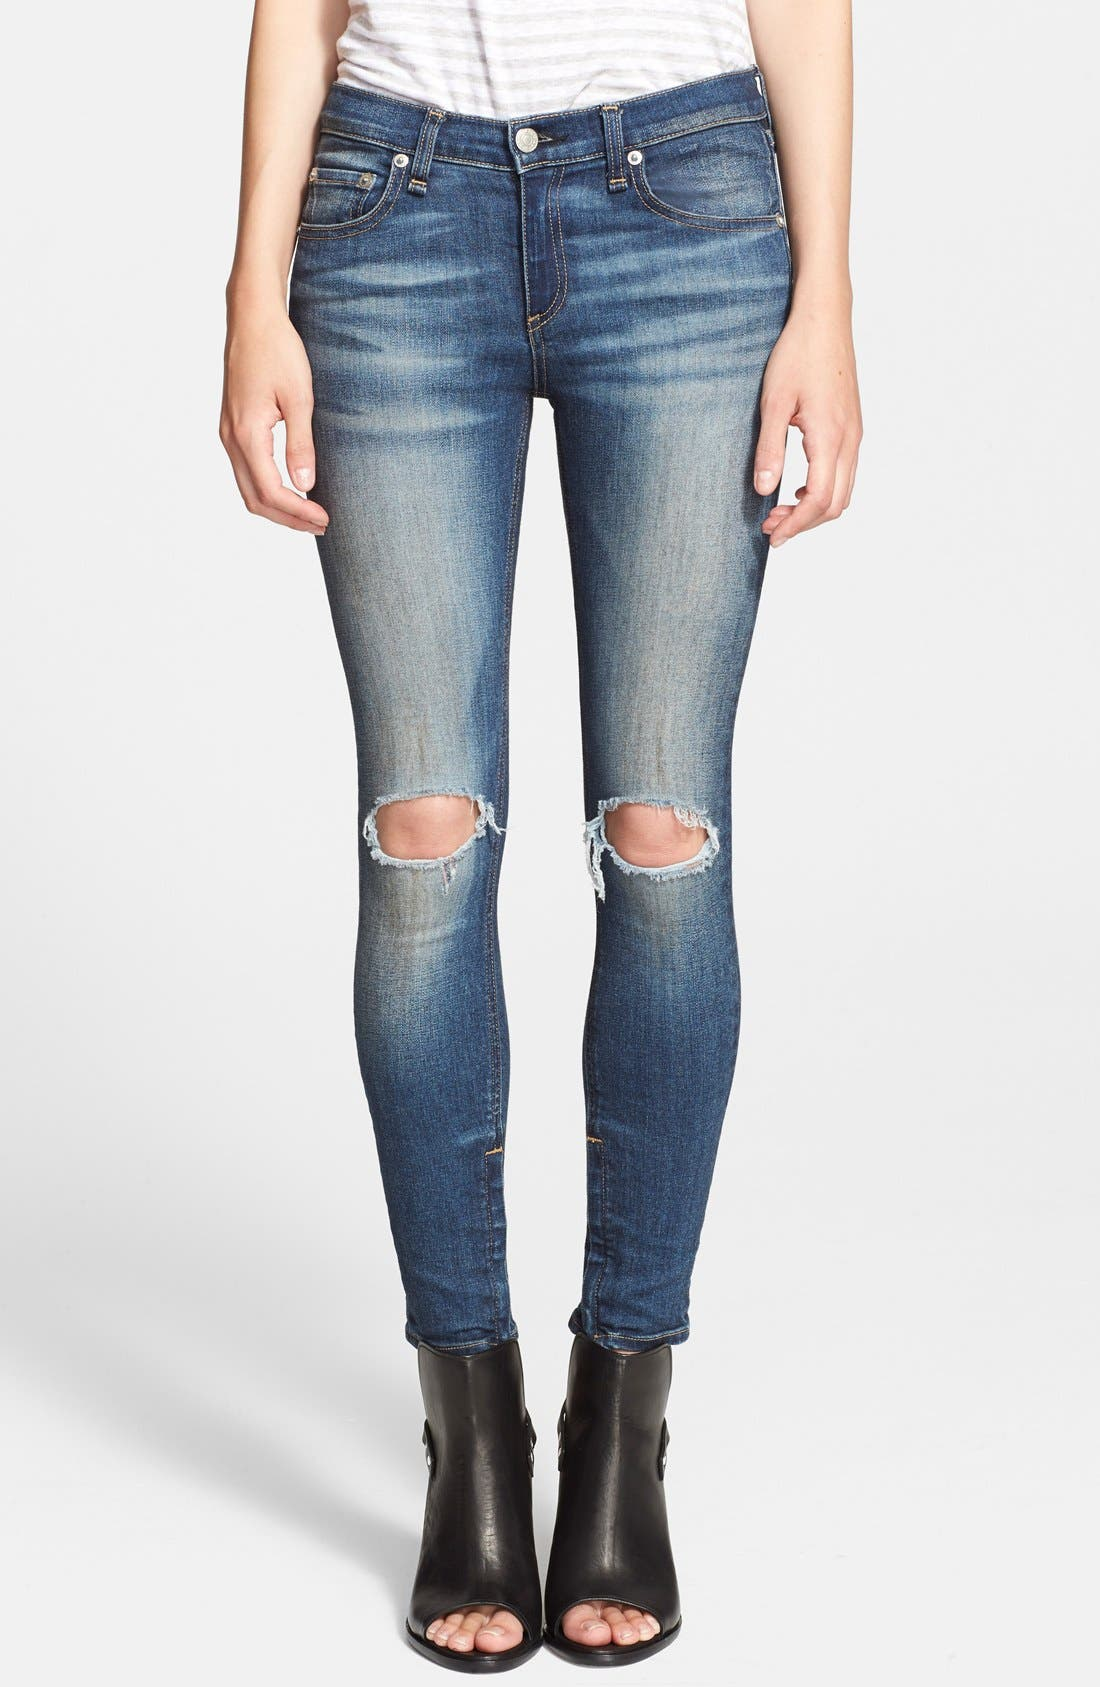 Alternate Image 1 Selected - rag & bone/JEAN Destroyed Skinny Ankle Jeans (Pacifico)